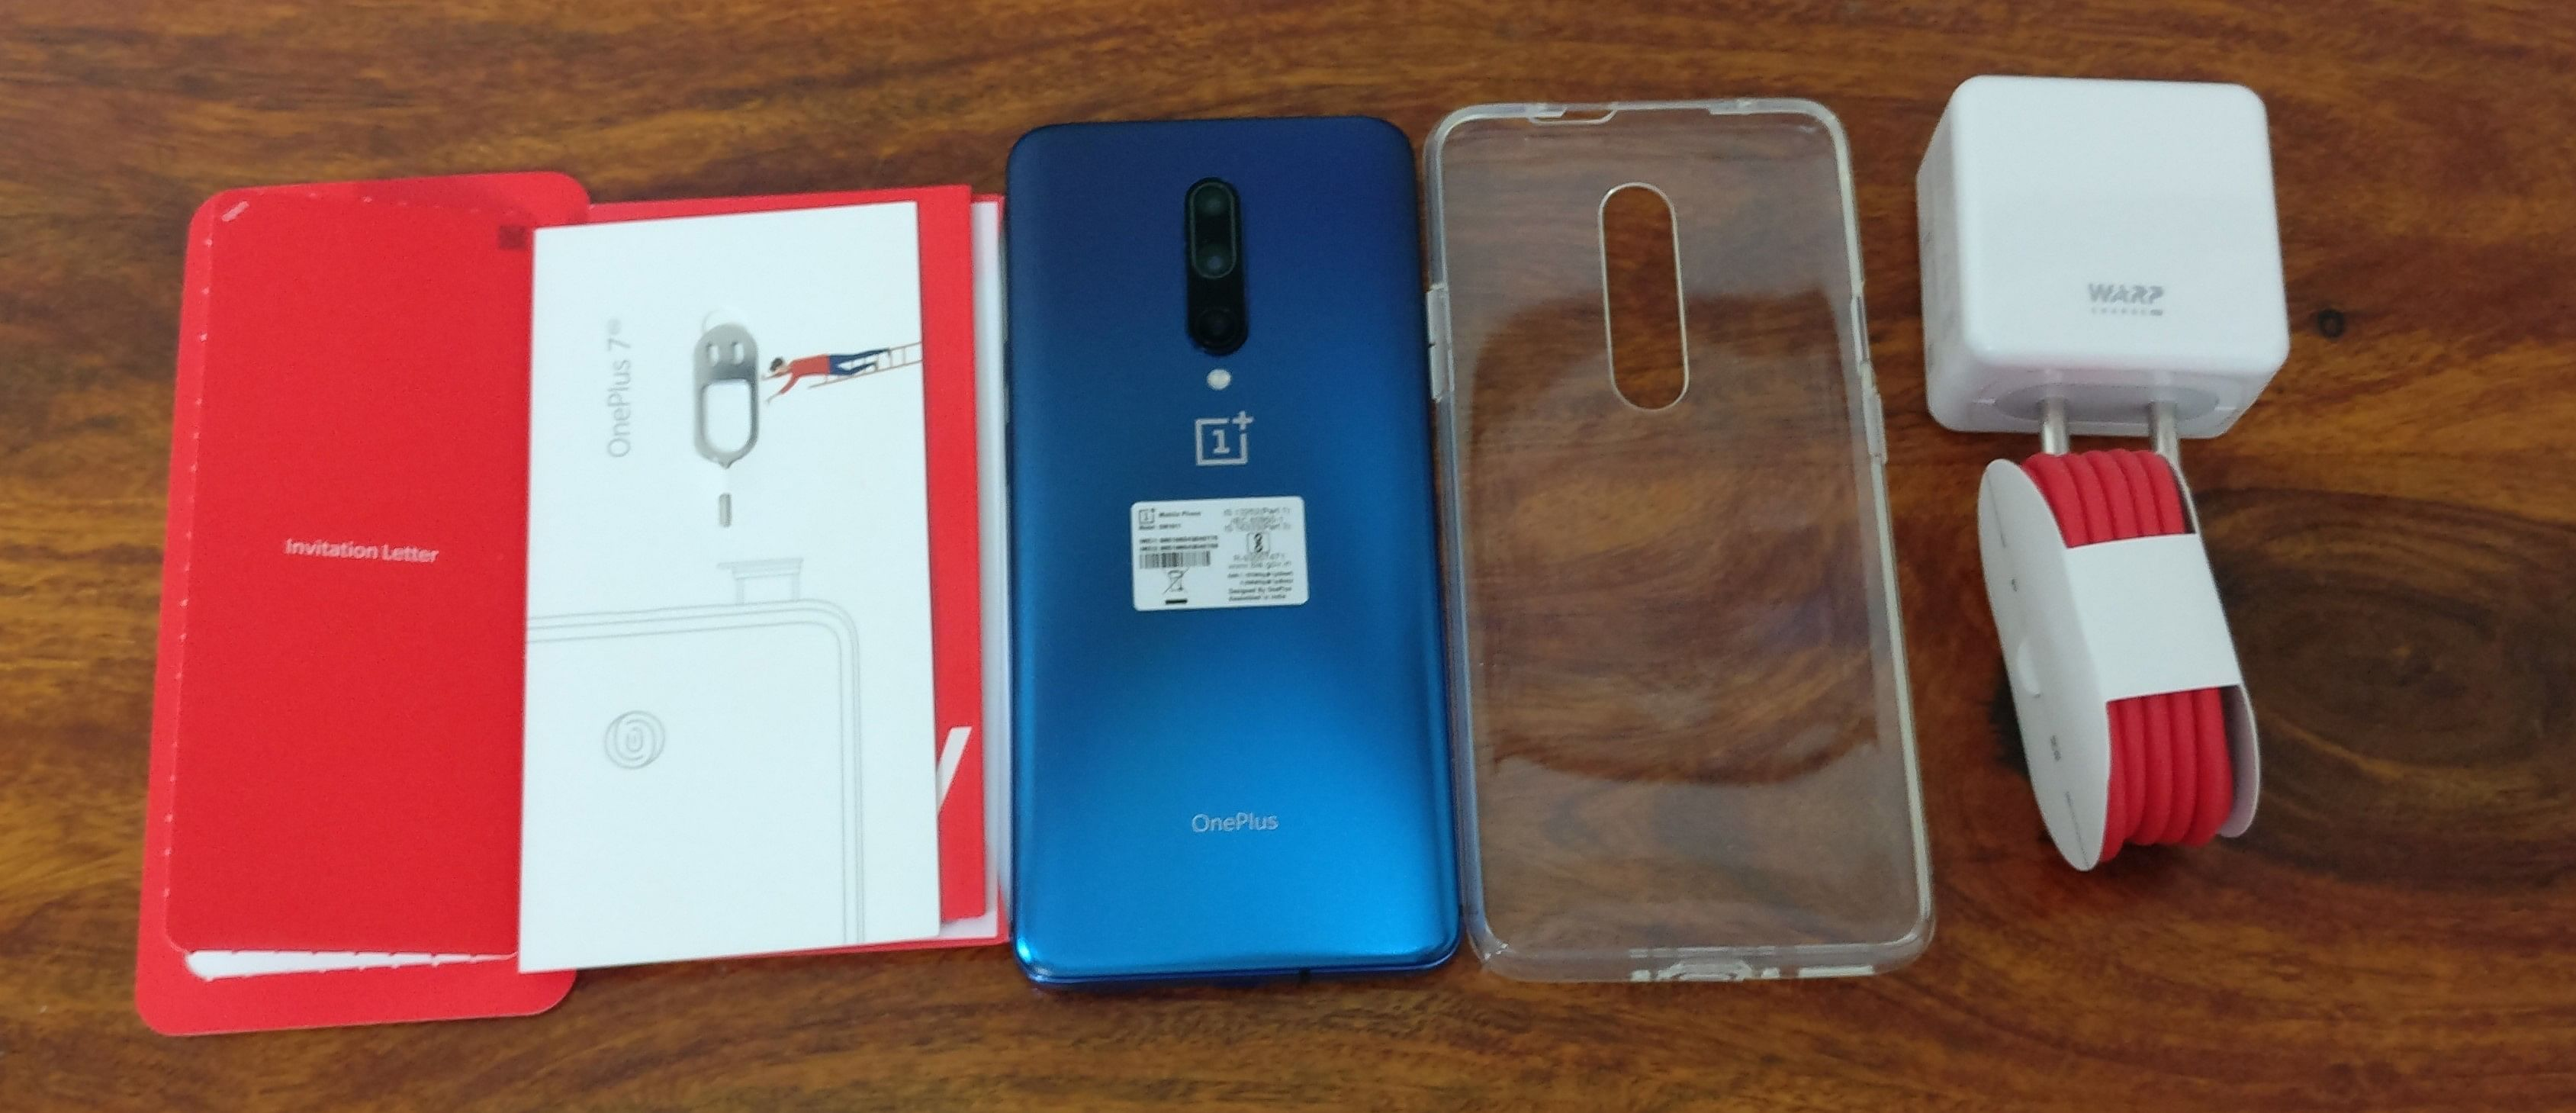 OnePlus 7 Pro: A near-perfect Android smartphone in need of a few